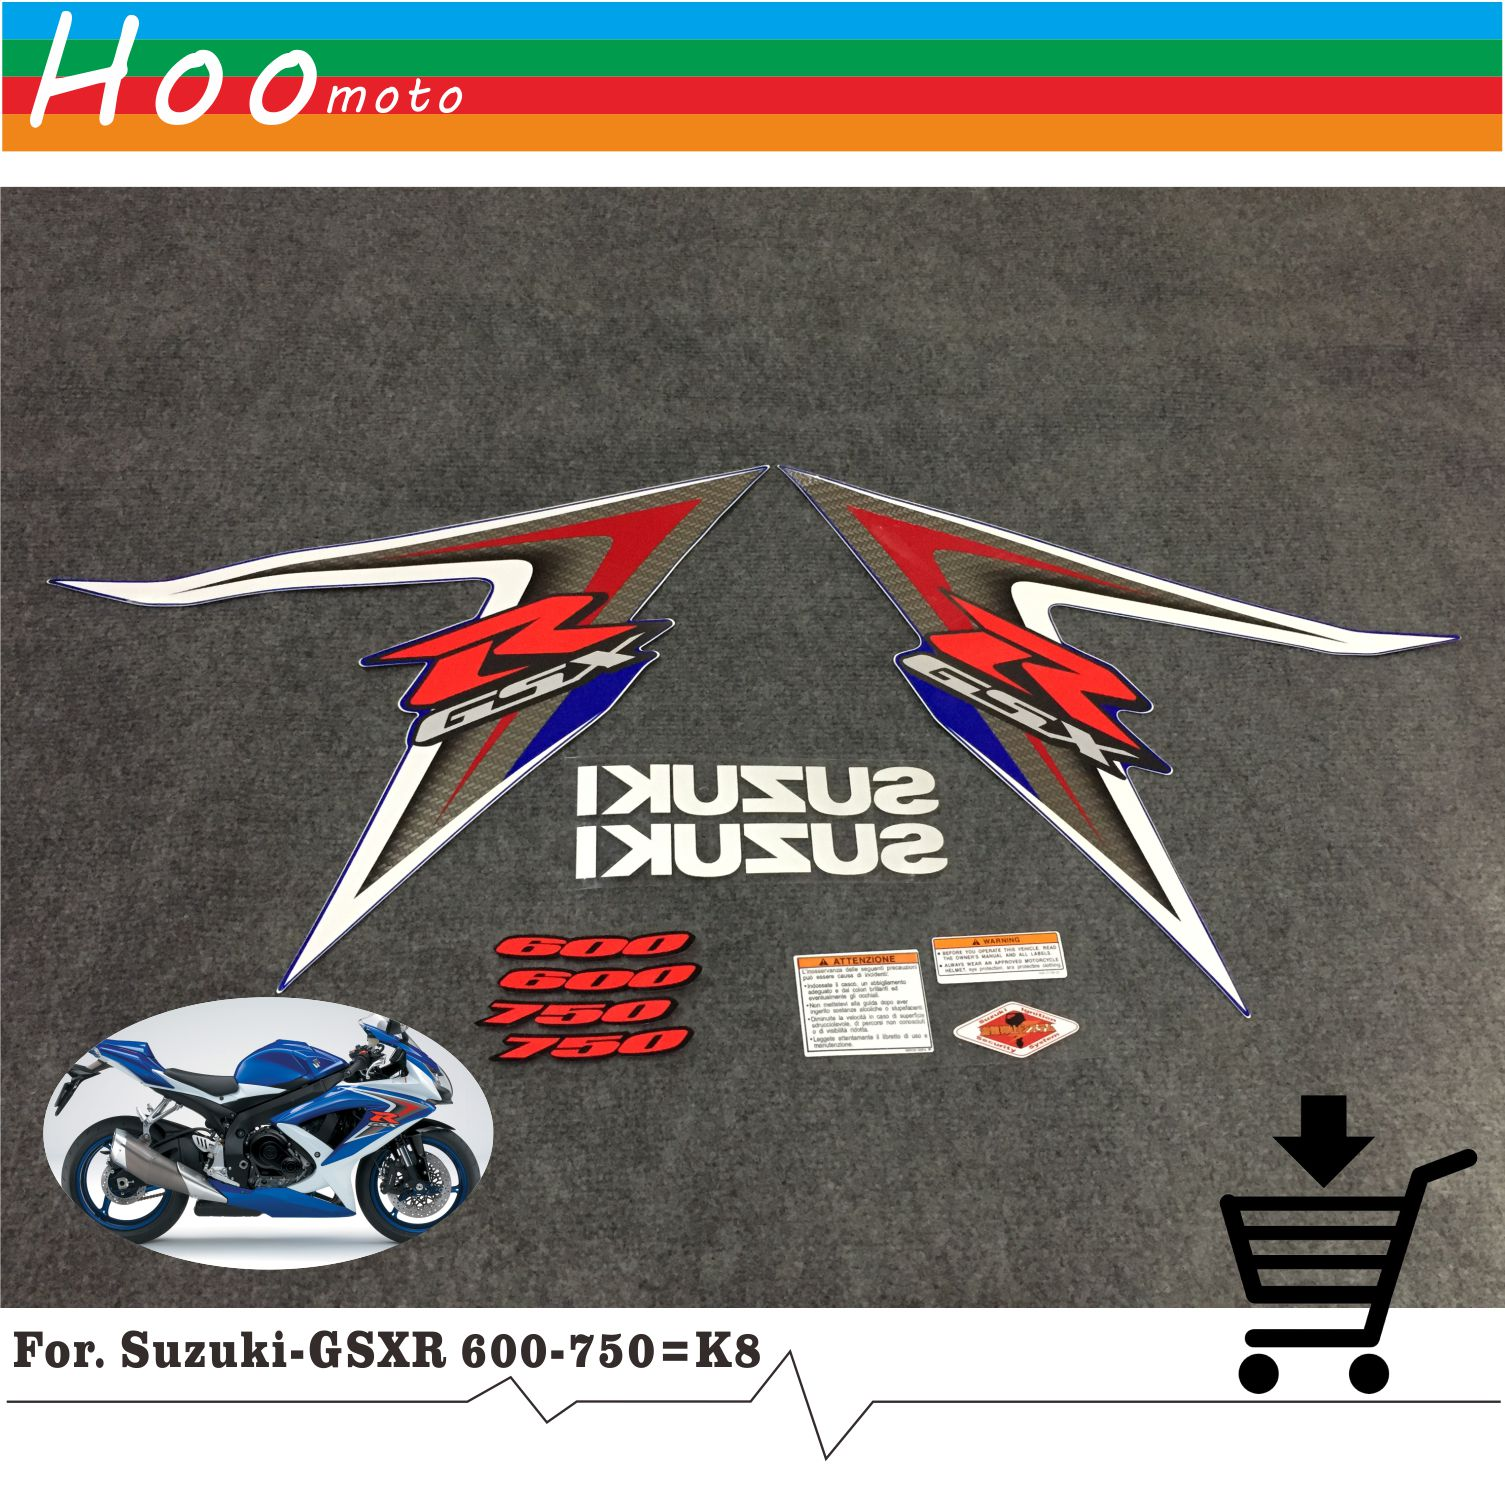 GSXR <font><b>GSX</b></font>-R <font><b>GSX</b></font> R <font><b>600</b></font> 750 K8 <font><b>2008</b></font> High Quality Decals Sticker Motorcycle Car-styling Stickers for Suzuki Decals Sticker MOTO image